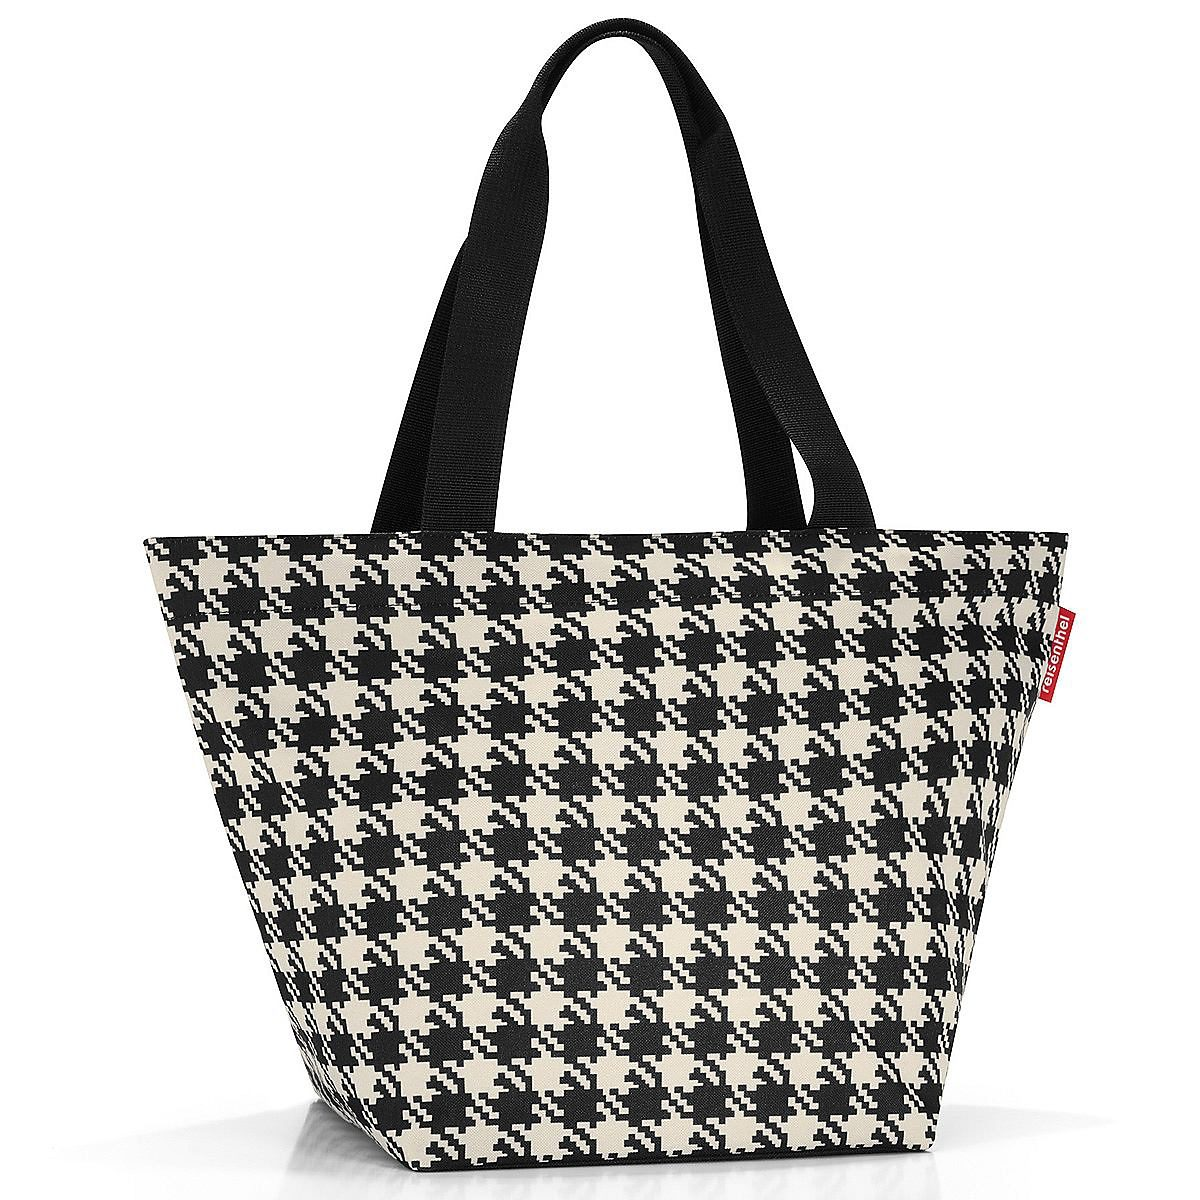 REISENTHEL® Shopper M fifties